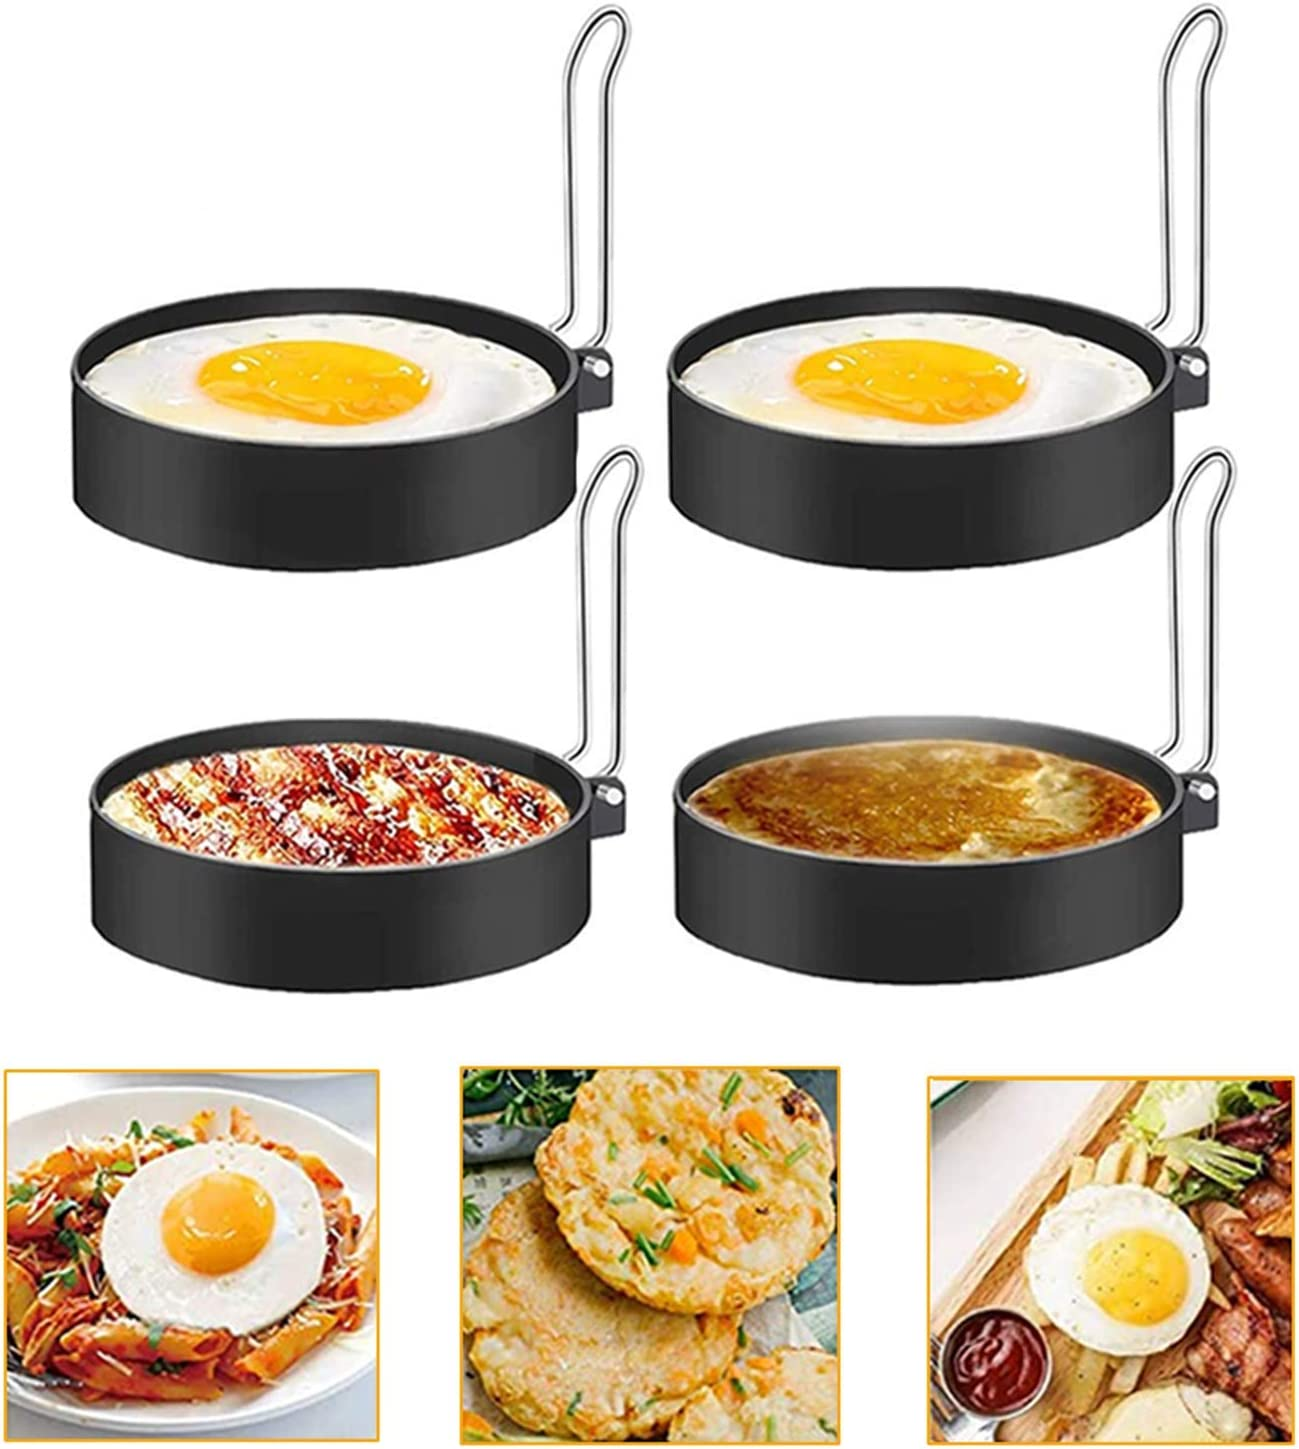 Egg Ring, Round Pancake Mold Egg Mcmuffin Sandwich Maker Bacon Cooker Poached Egg Maker Nonstick Metal Rings Breakfast Household Kitchen Cooking Tool for Frying Eggs (4 Pack)